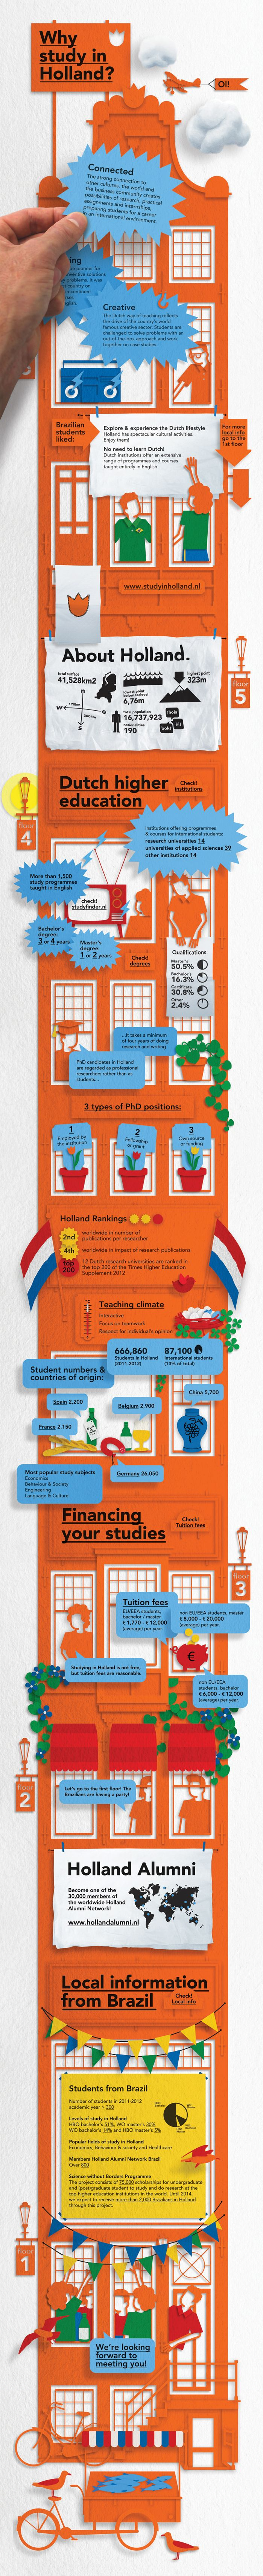 Unique Infographic Design, Why Study In Holland via @supergirl666 #Infographic #Design #Holland #Education